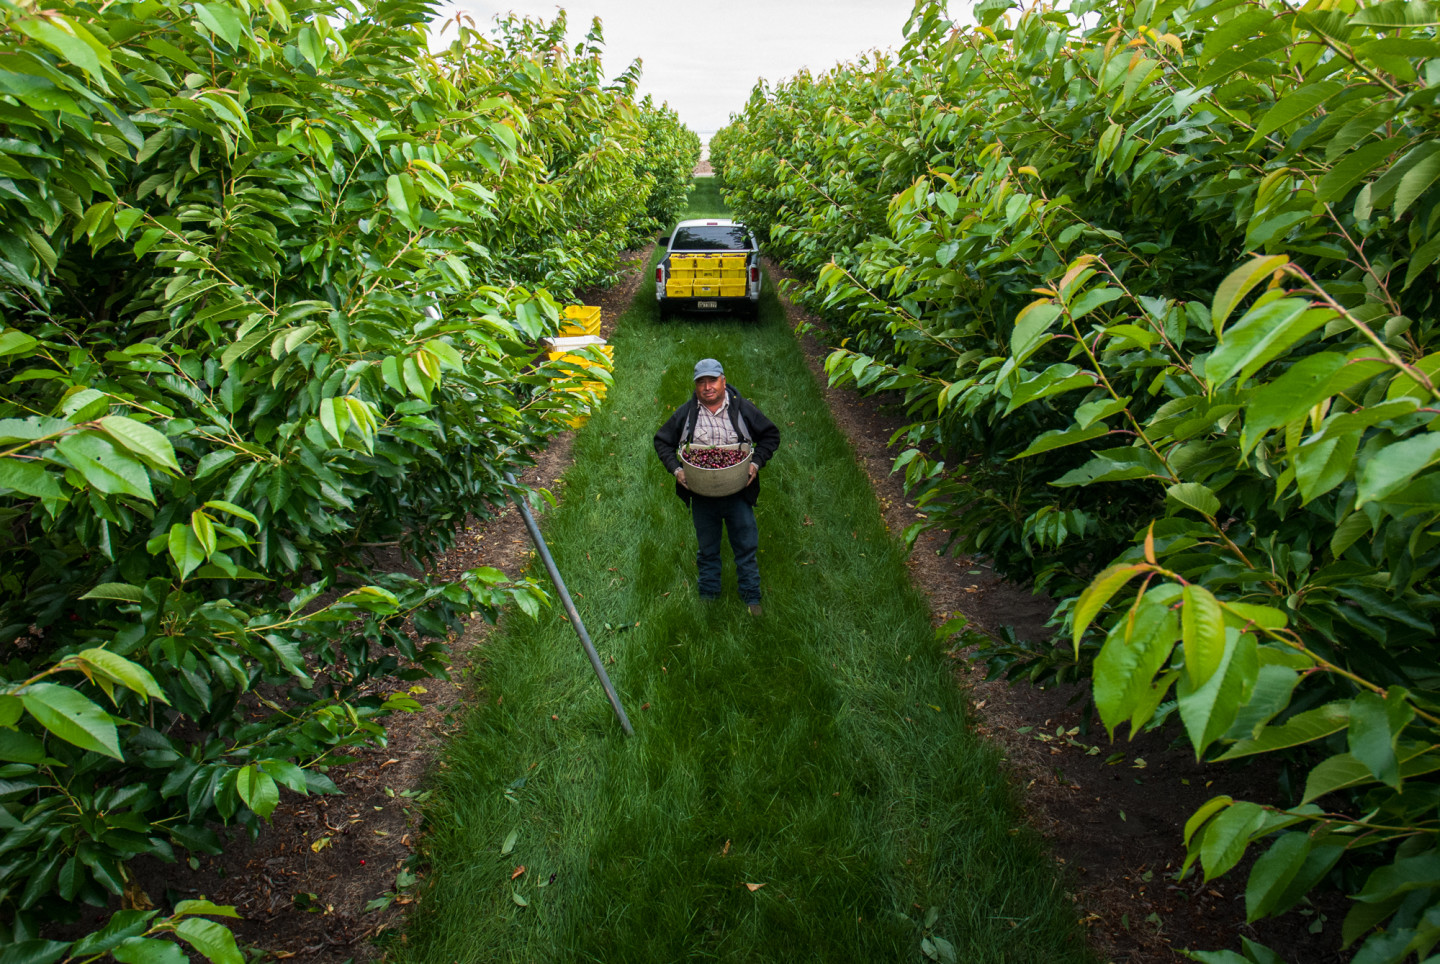 Farm worker, Juan Espinoza, stands amid the rows of healthy cherry trees in Gilroy, Calif. Cynthia E. Wood/KQED